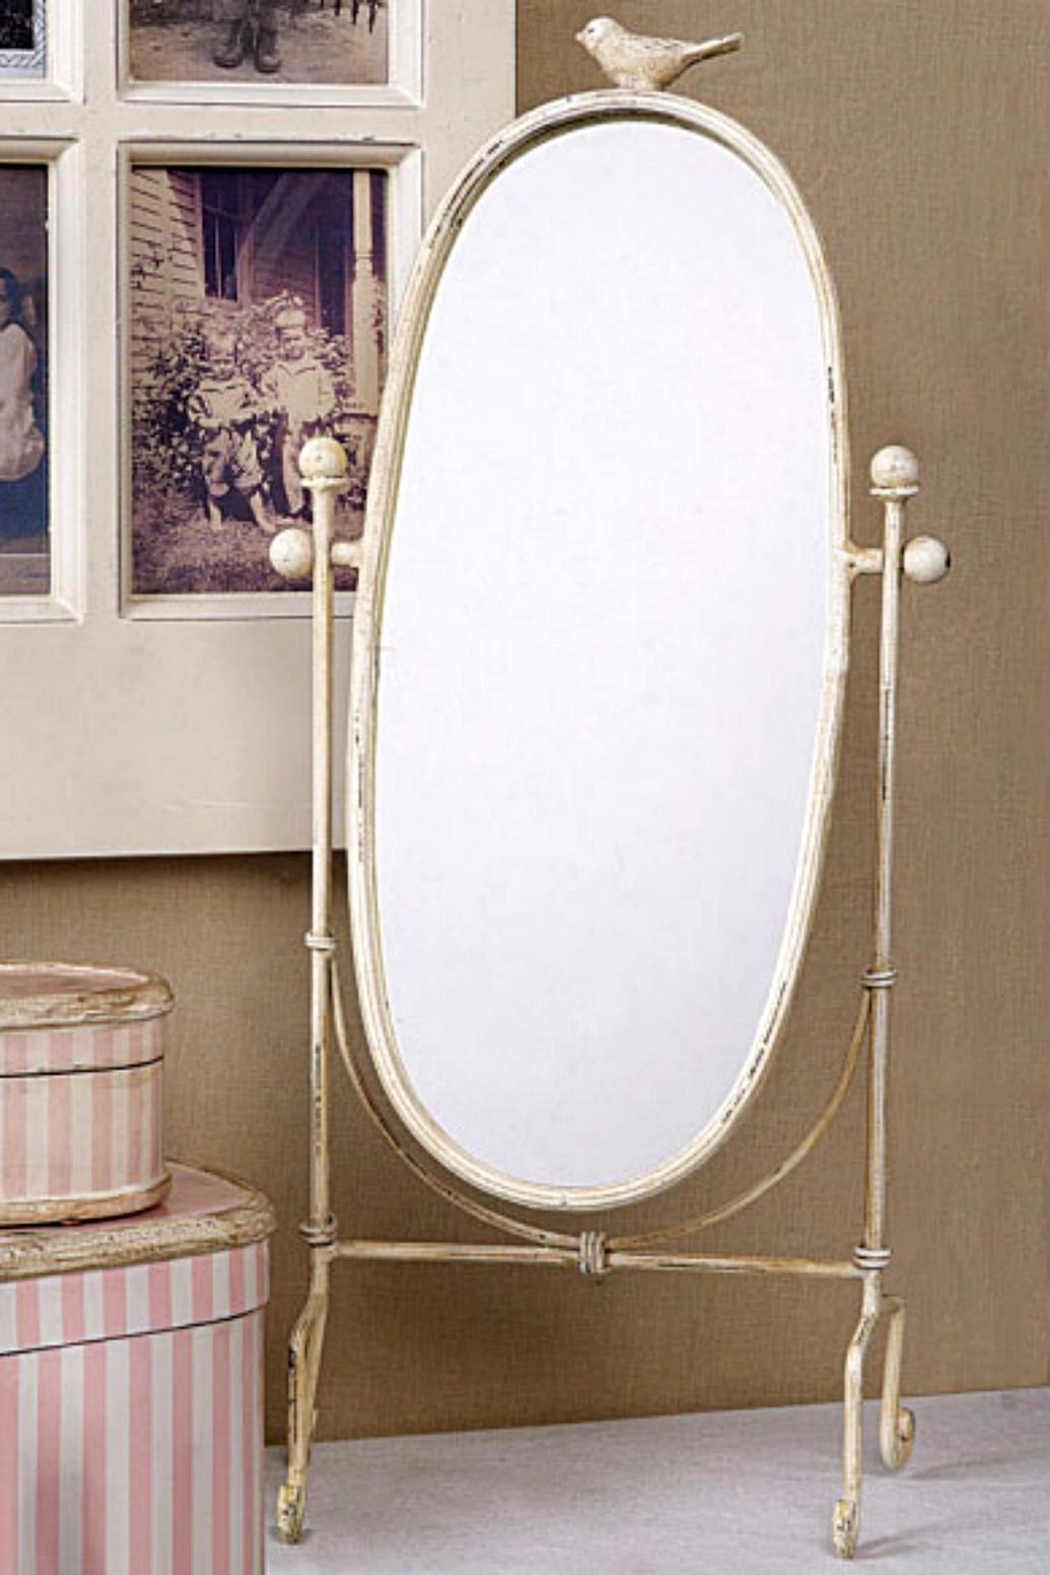 Creative Co-Op Personal Tilting Mirror - Front Full Image